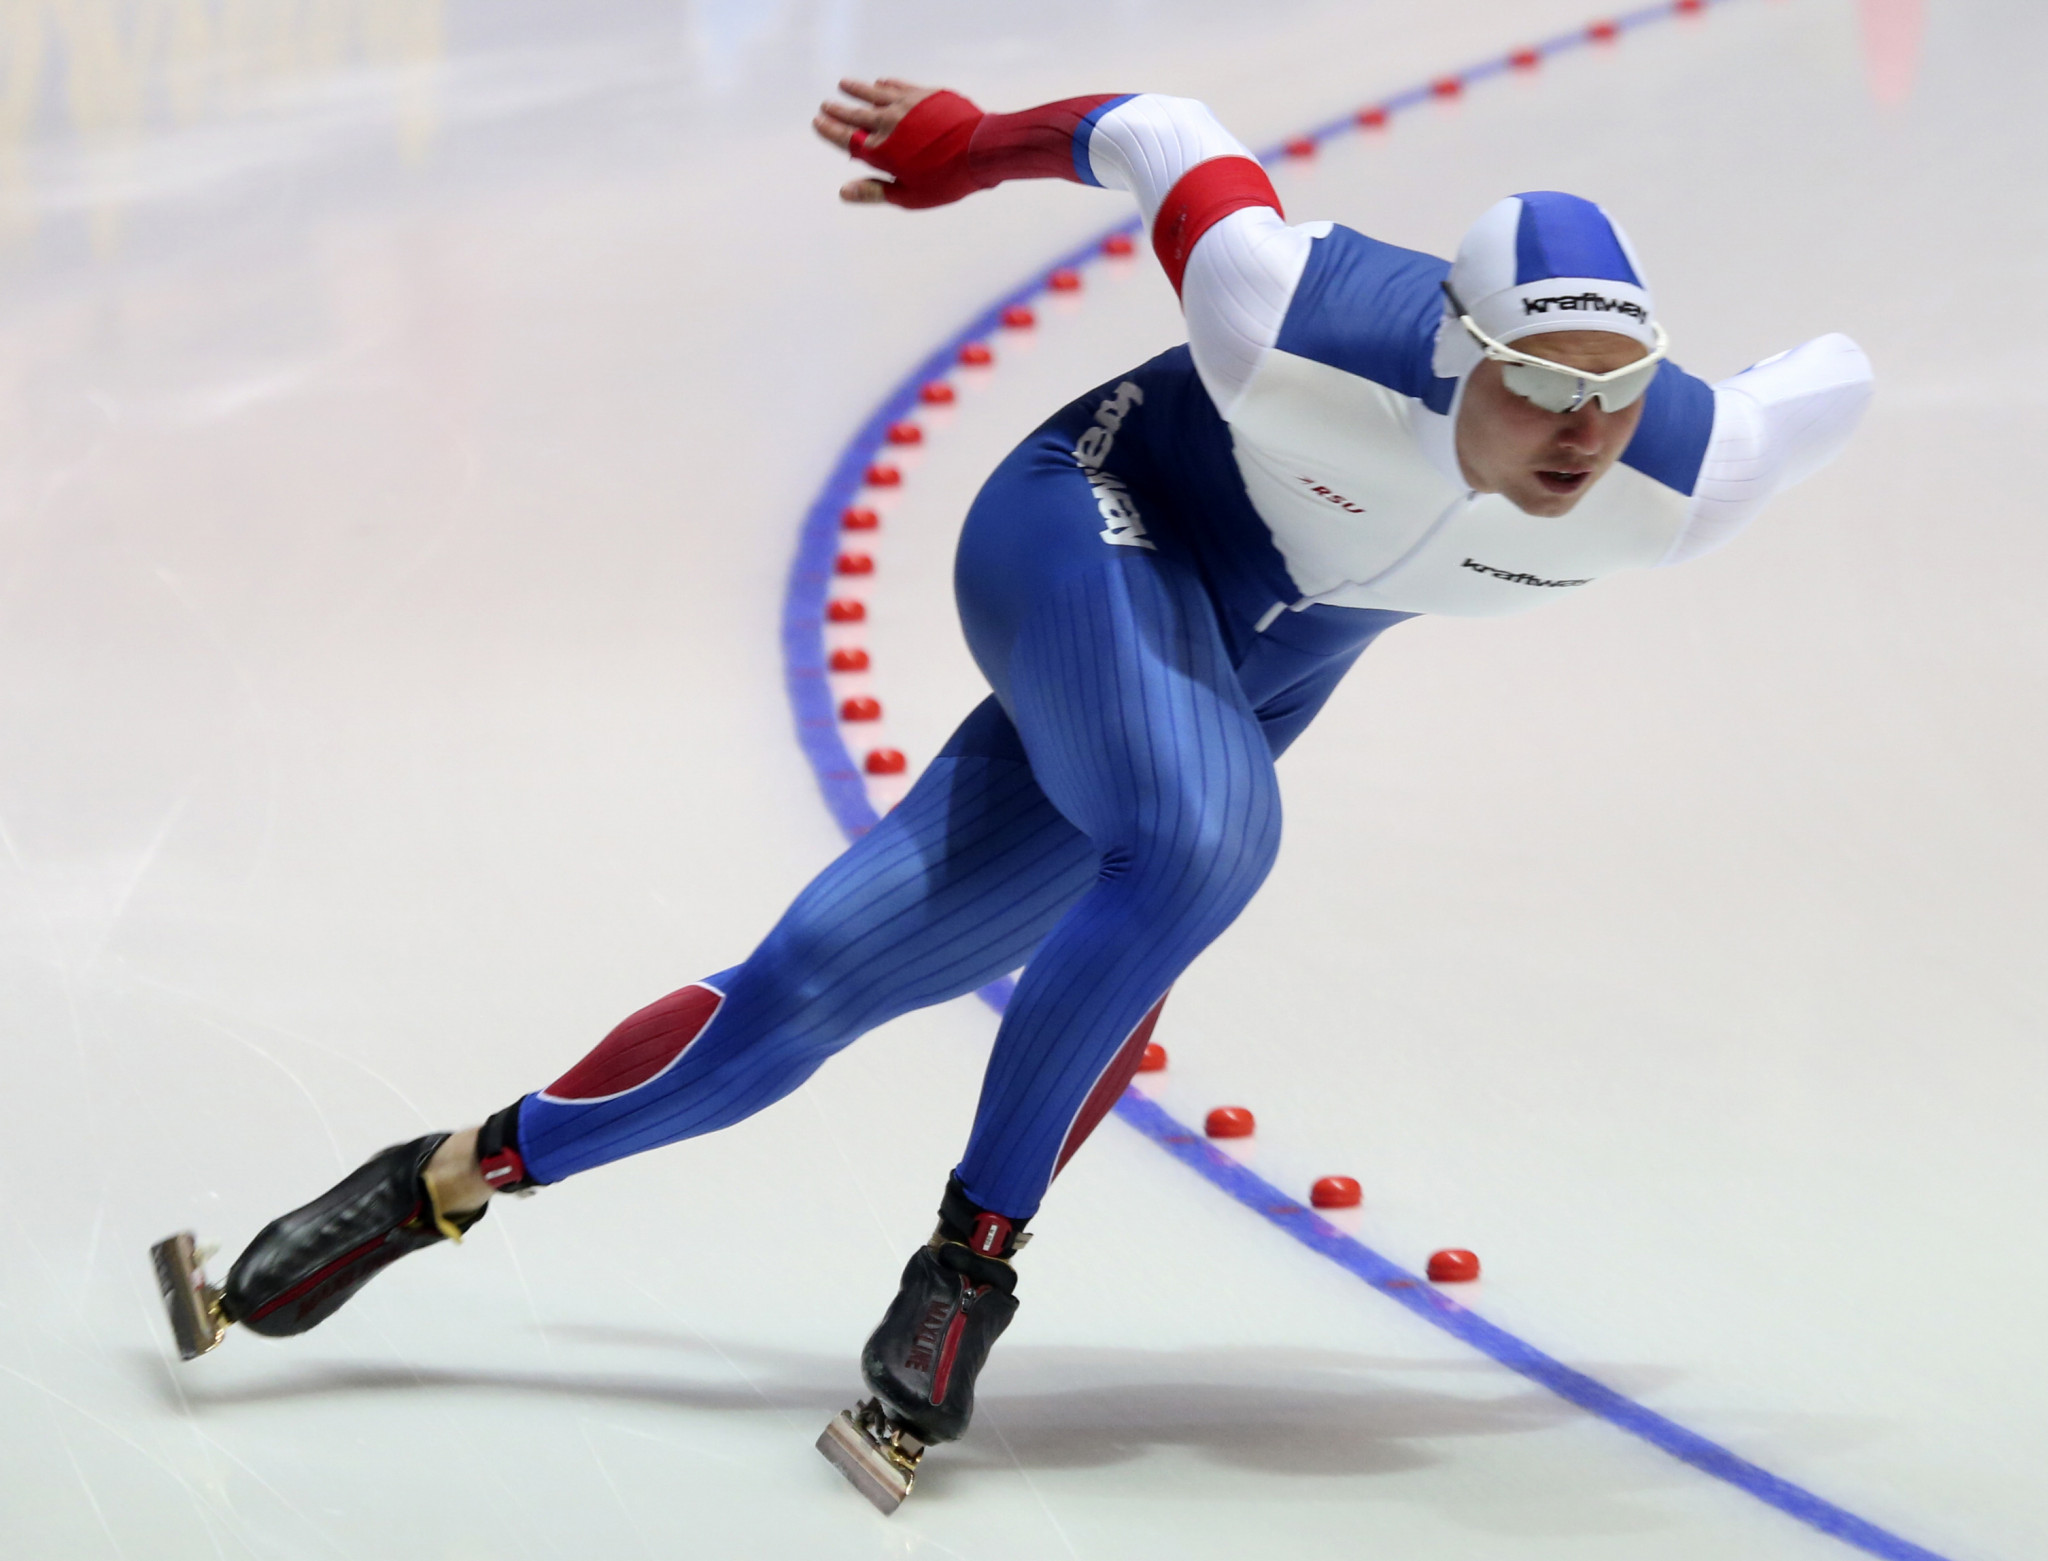 Pavel Kulizhnikov has had an appeal rejected at the CAS ©Getty Images